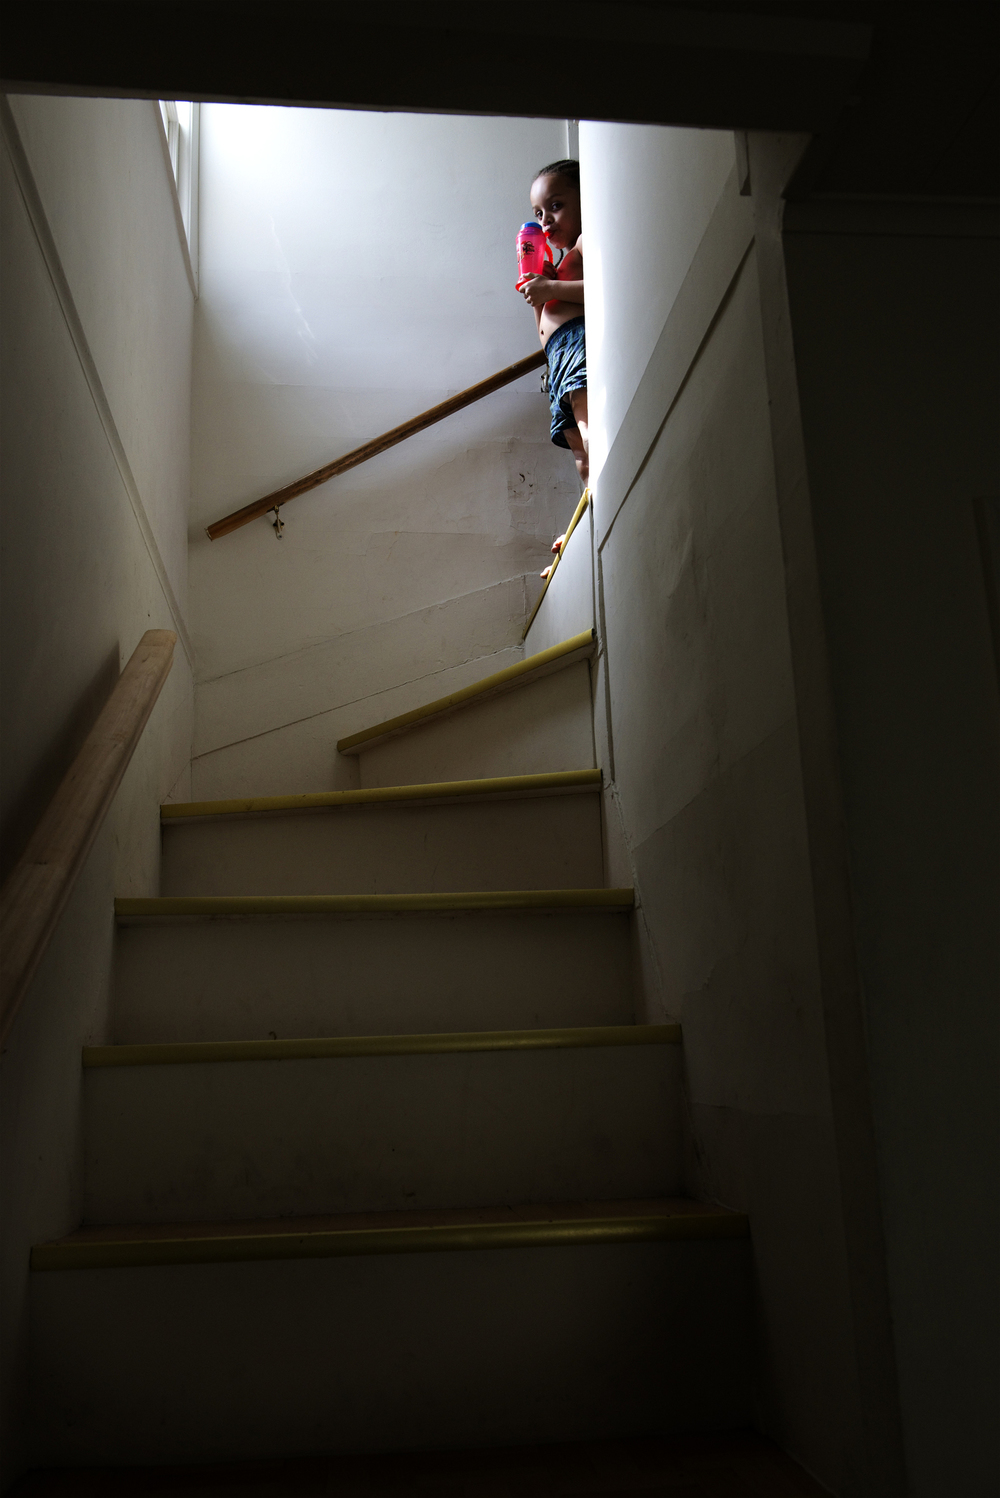 Jesiel Huertas, 4, waits at the top of the stairs for his mom to help him get dressed for school.